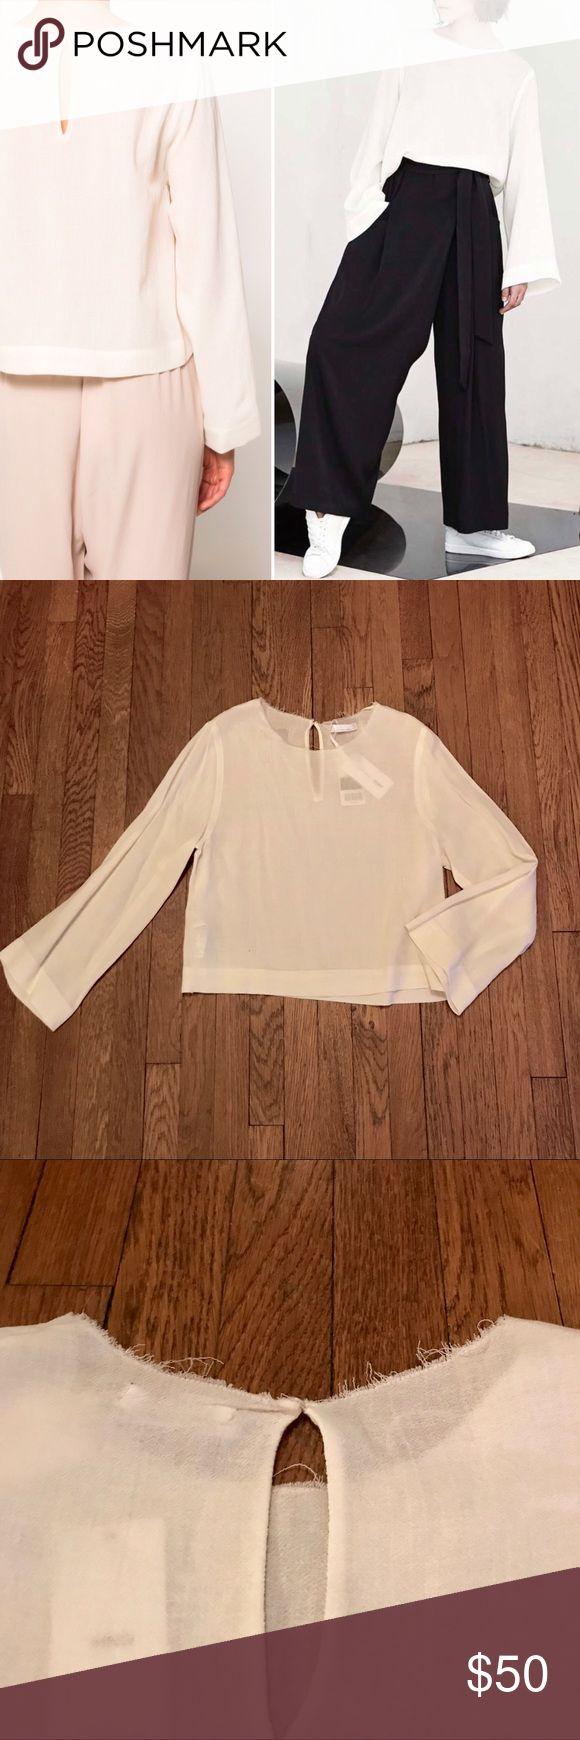 NWT •MANGO Spain Premium Coll. Flare-sleeve Blouse 🌟BRAND NEW w/TAGS! NEVER WORN🌟   🦋MANGO Barcelona Premium Collection  🦋Looks & feels beautiful! • silky-soft, lightweight material made of lush new wool blend • light cream color  🦋Slightly Boxy / Cropped style is very flattering & perfect with high waisted trousers, jeans, or skirts!  🦋Soft fraying around neckline adds a bit of edginess  🦋Chic sophistication — so versatile — easily transition from professional to more casual looks…